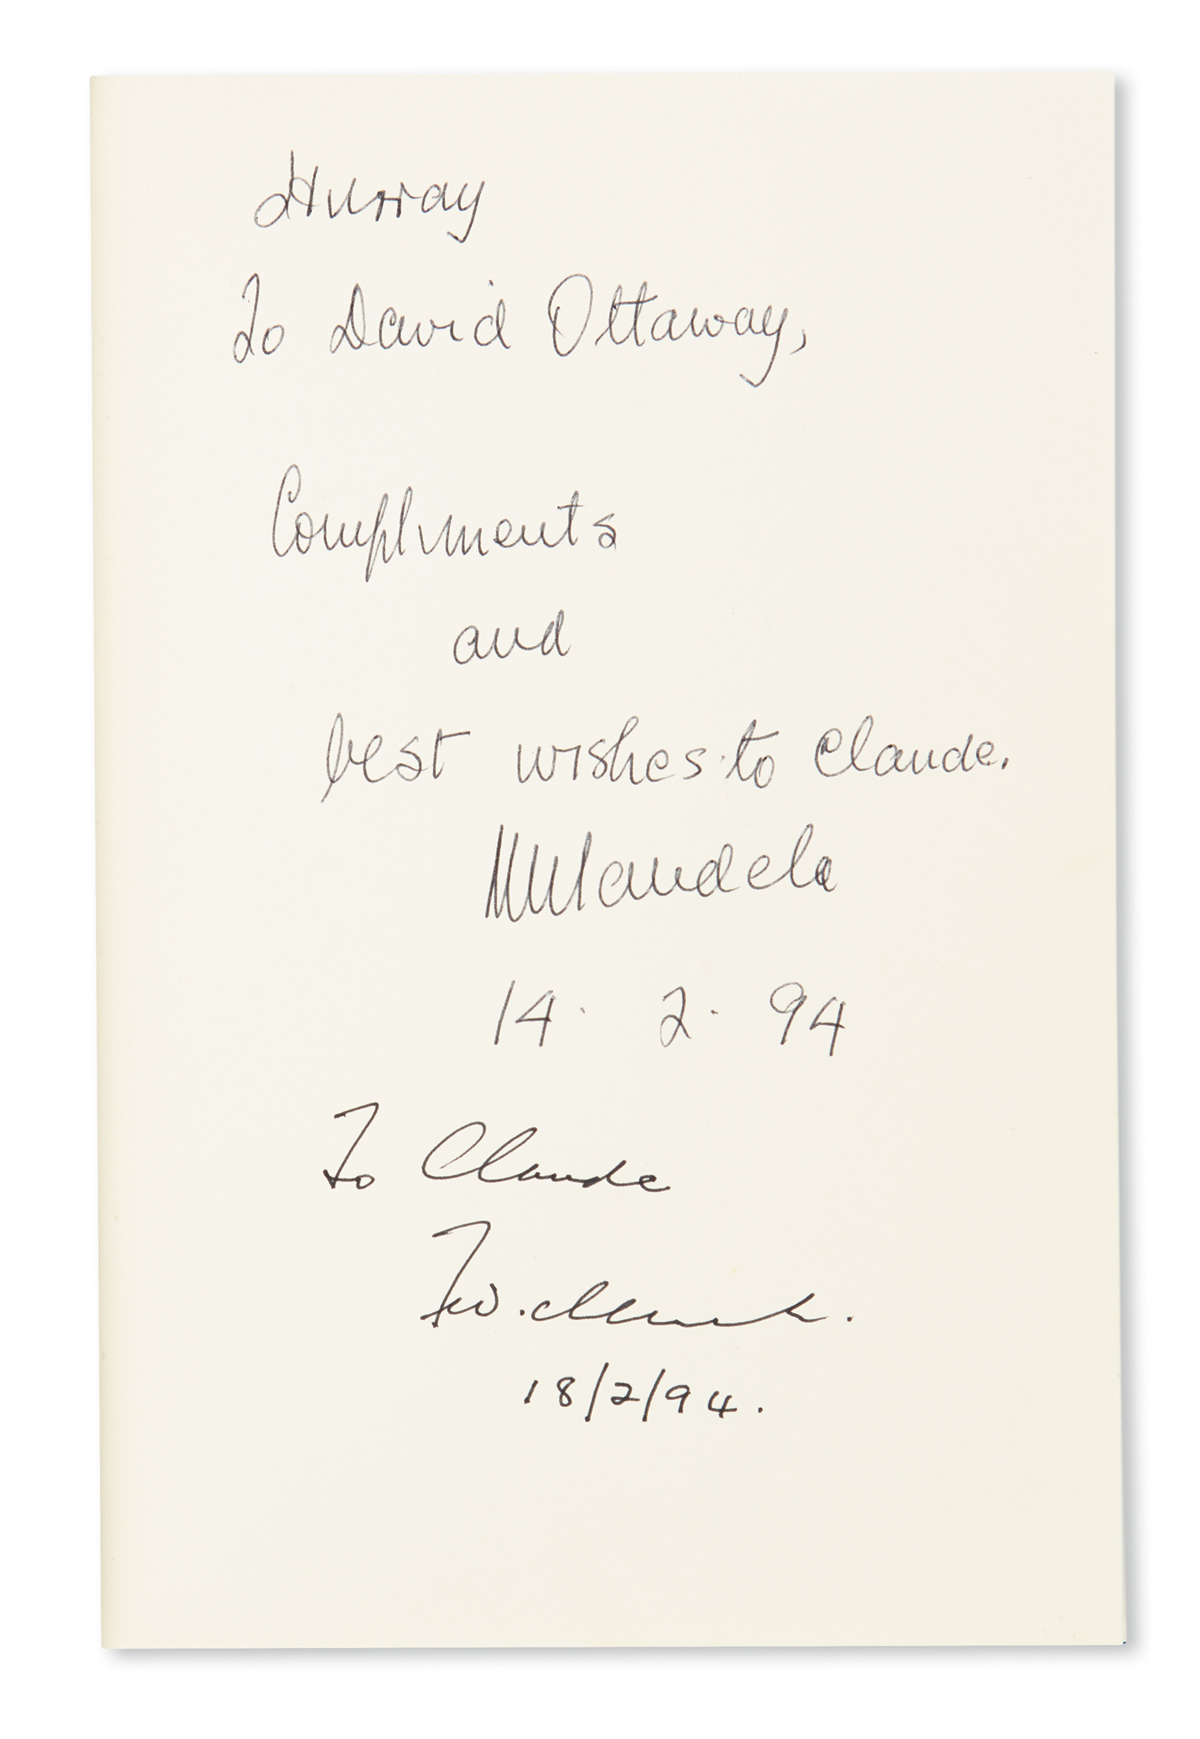 MANDELA-NELSON-David-Ottaway-Chained-Together-Signed-and-Inscribed-by-Mandela-on-the-front-free-endpaper